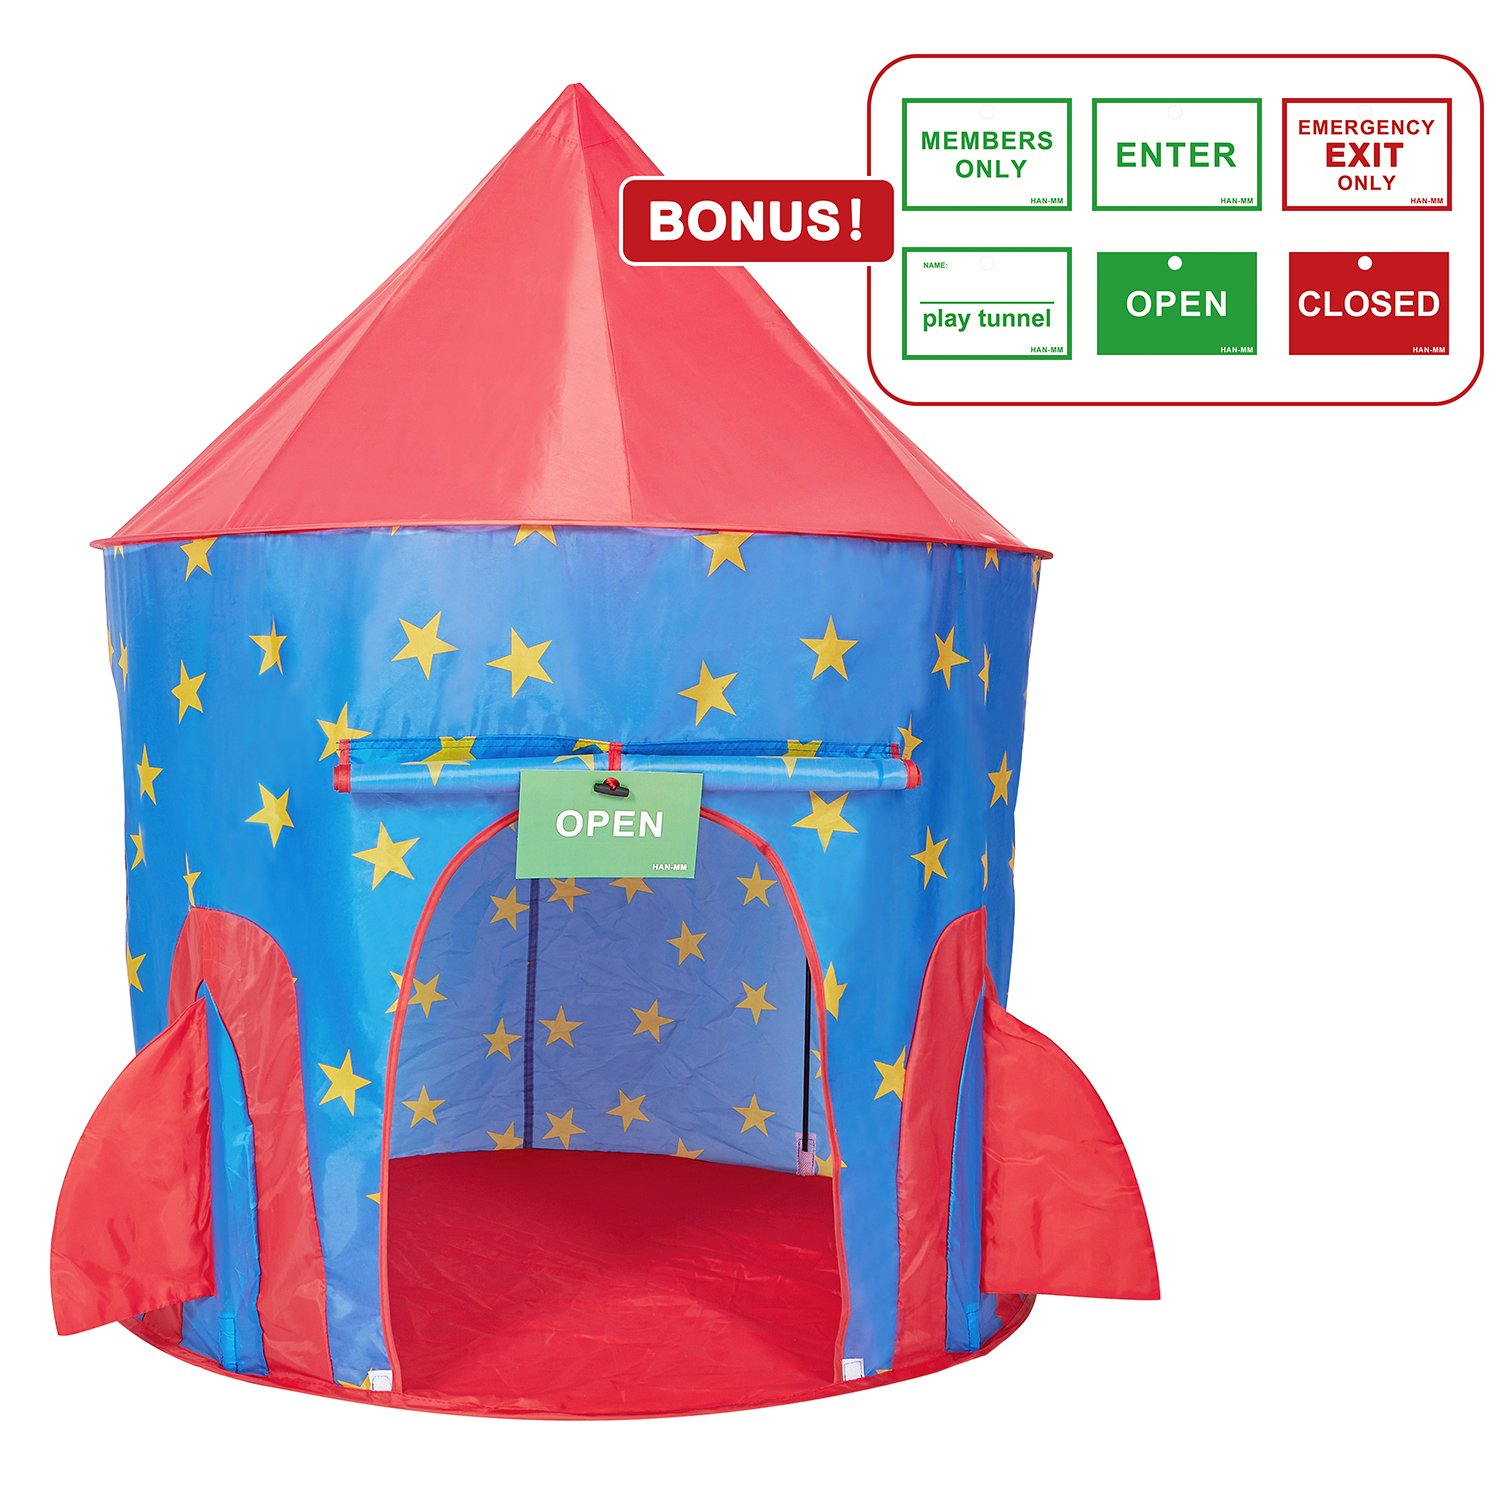 HAN MM Kids Playhouse Rocket Ship Astronaut Tent Hoop Toys with Bonus Message Signs for Indoor Outdoor Camping Children Activity Center Ship Playhouse